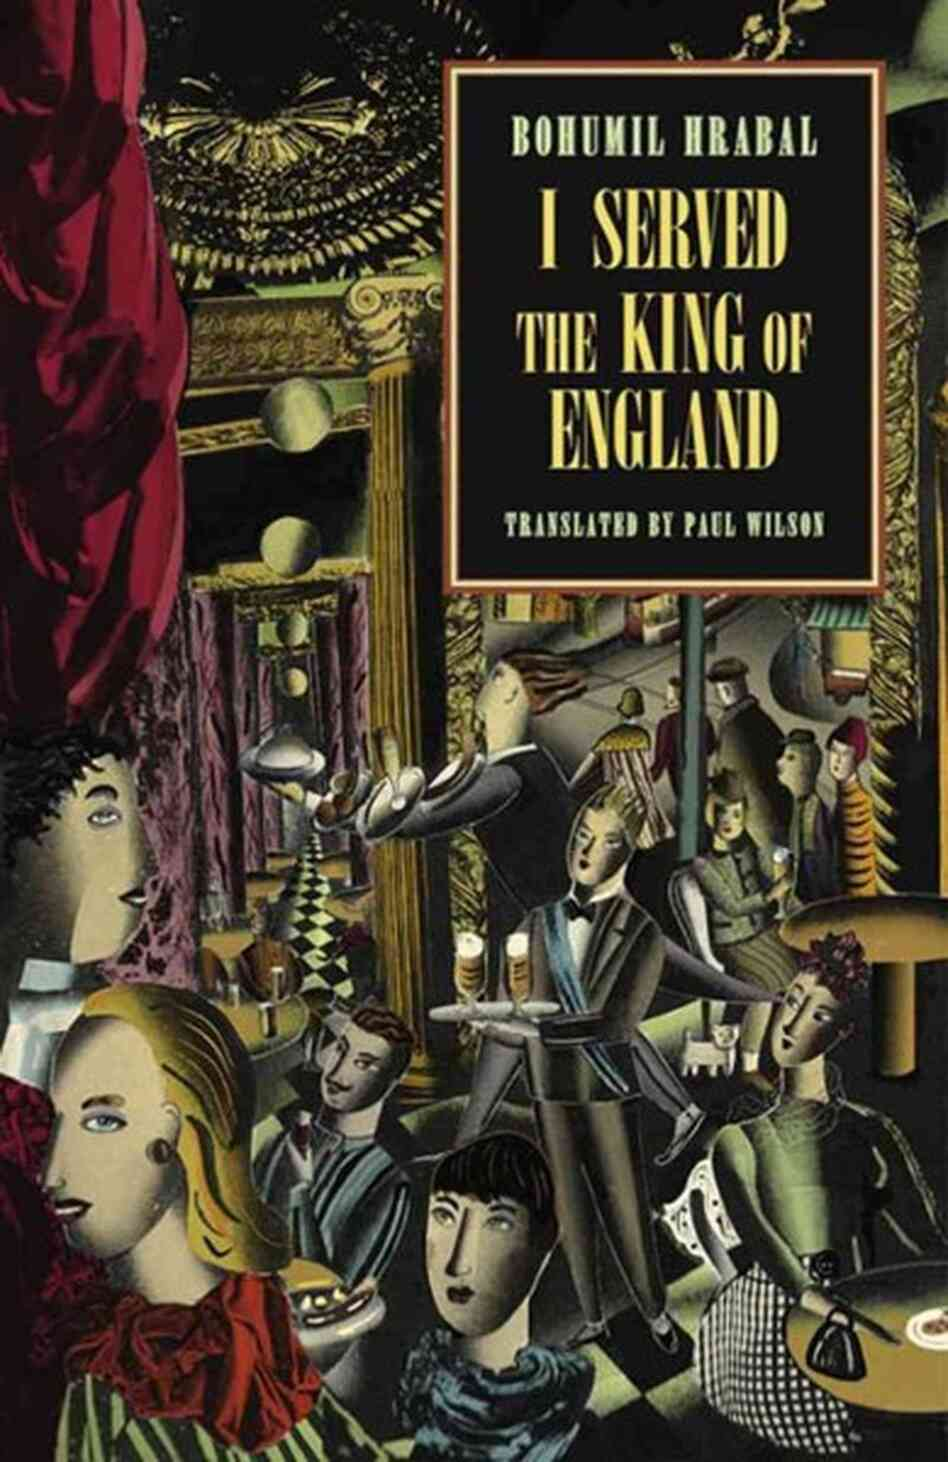 http://media.npr.org/assets/bakertaylor/covers/i/i-served-the-king-of-england/9780811216876_custom-0959c05ea23c739264dad3be3a1608249eeb1bbf-s6-c30.jpg